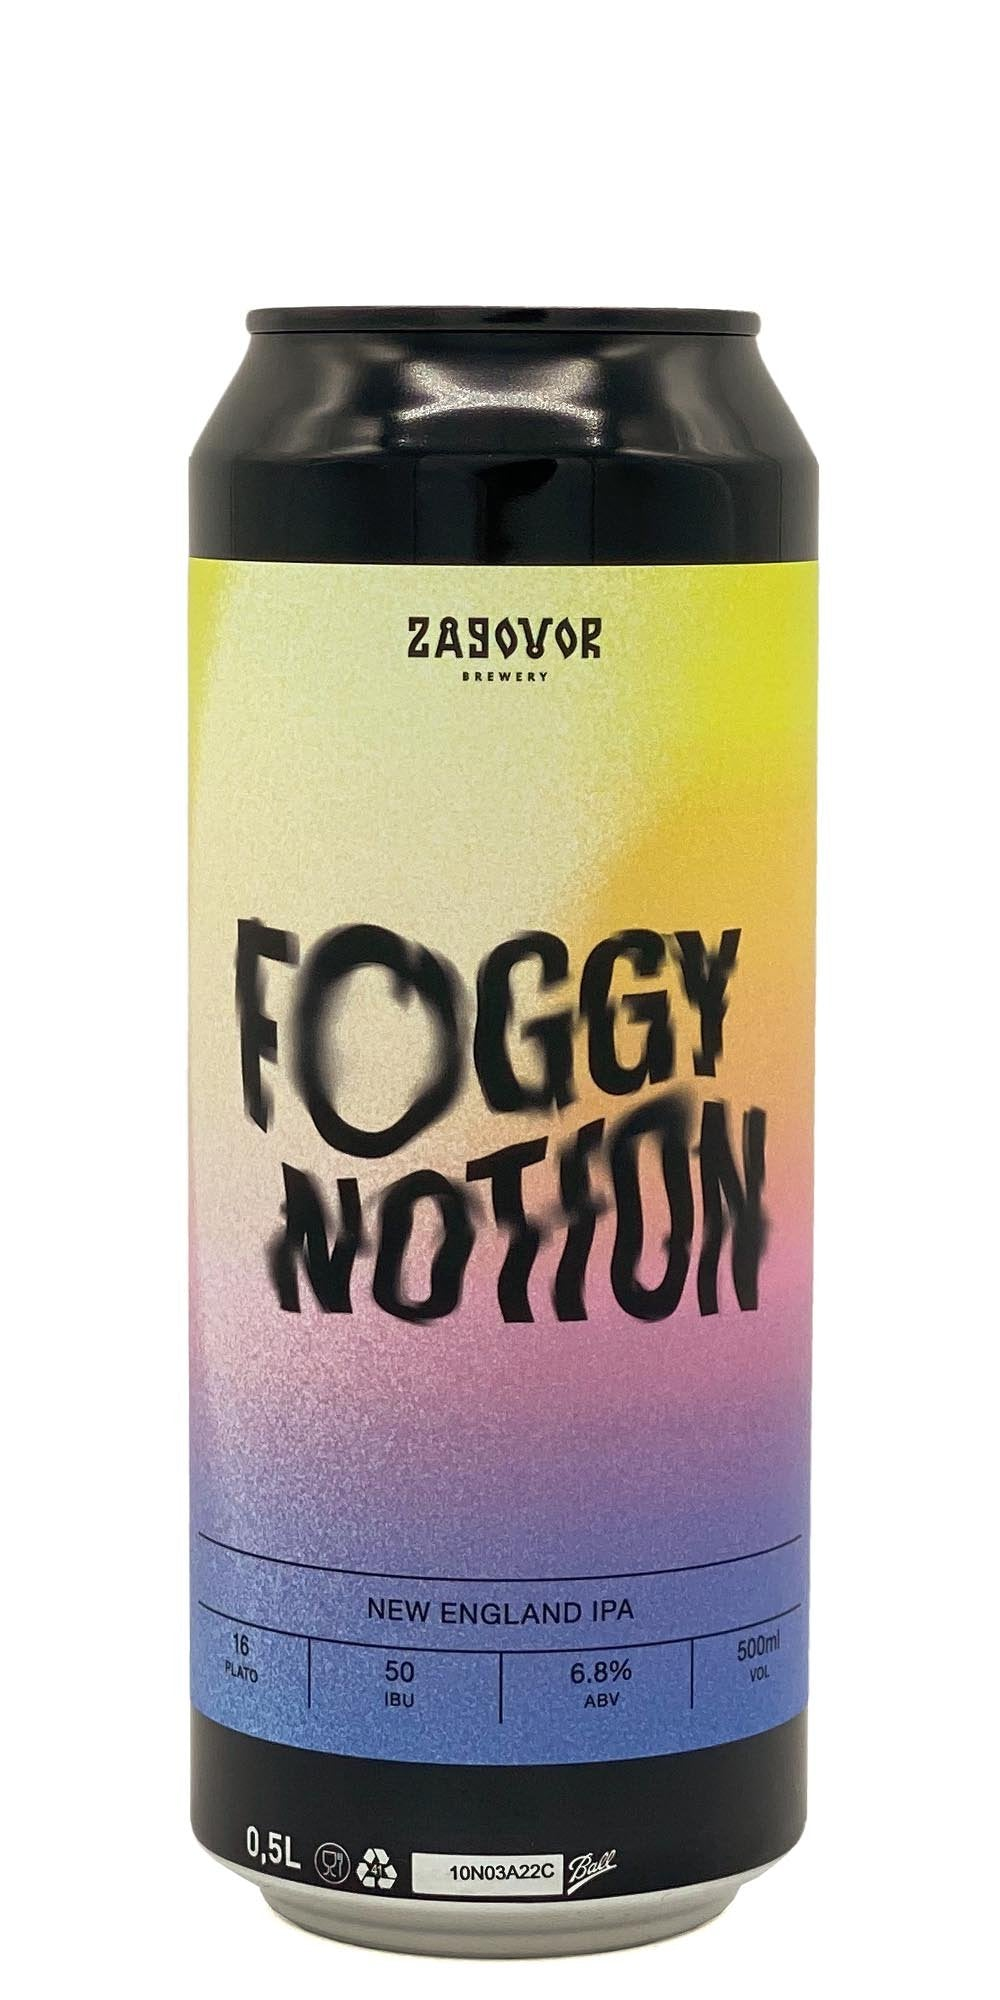 Zagovor Brewery - Foggy Notion - Drikbeer - Order Craft Beer Online